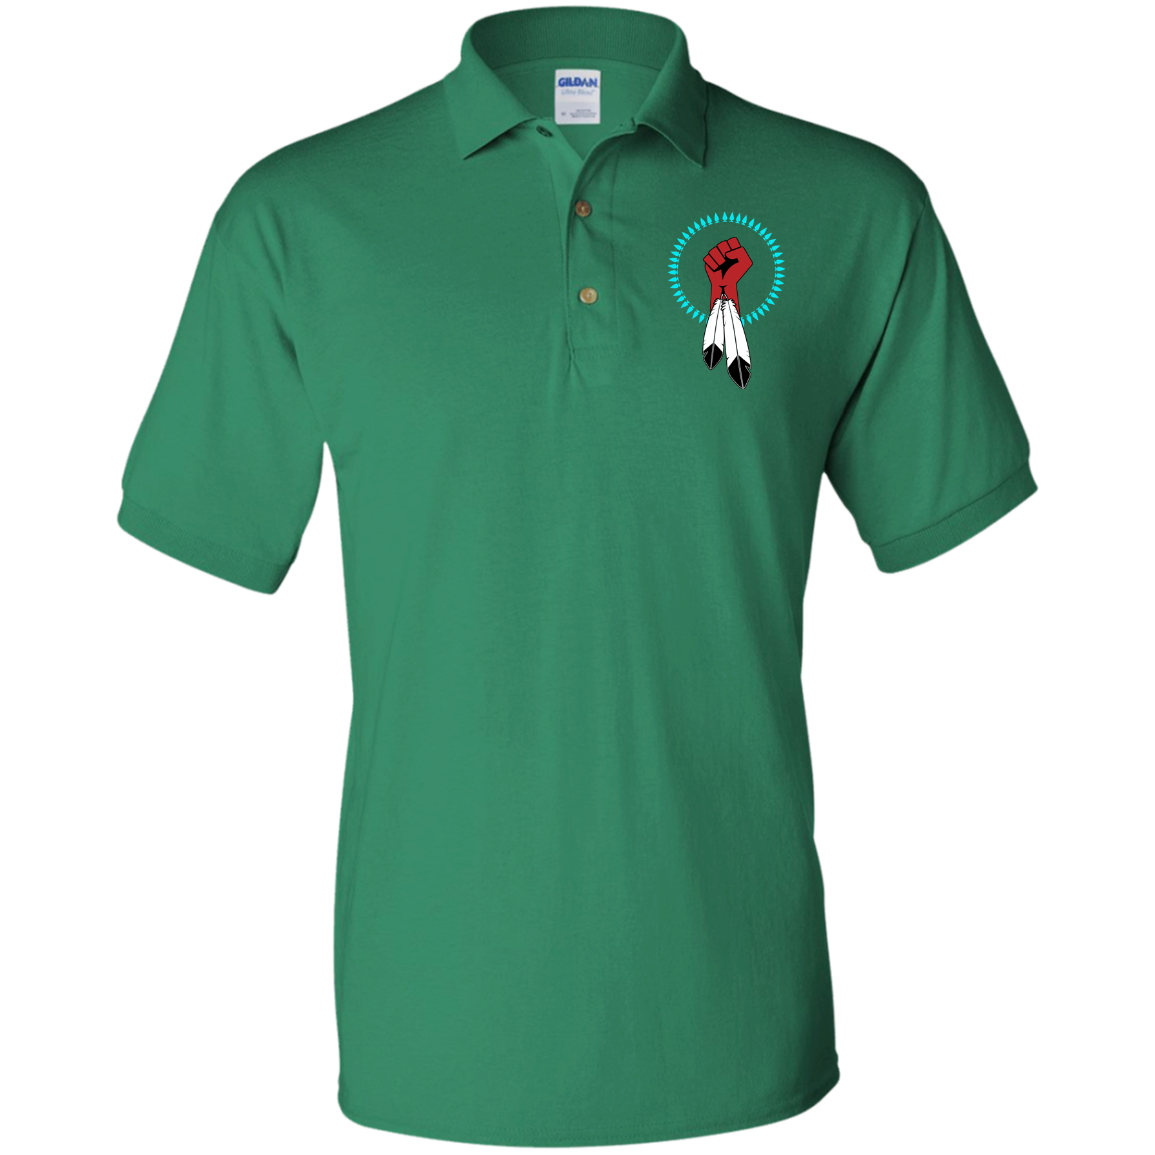 N8V MOVEMENT Gildan Jersey Polo Shirt